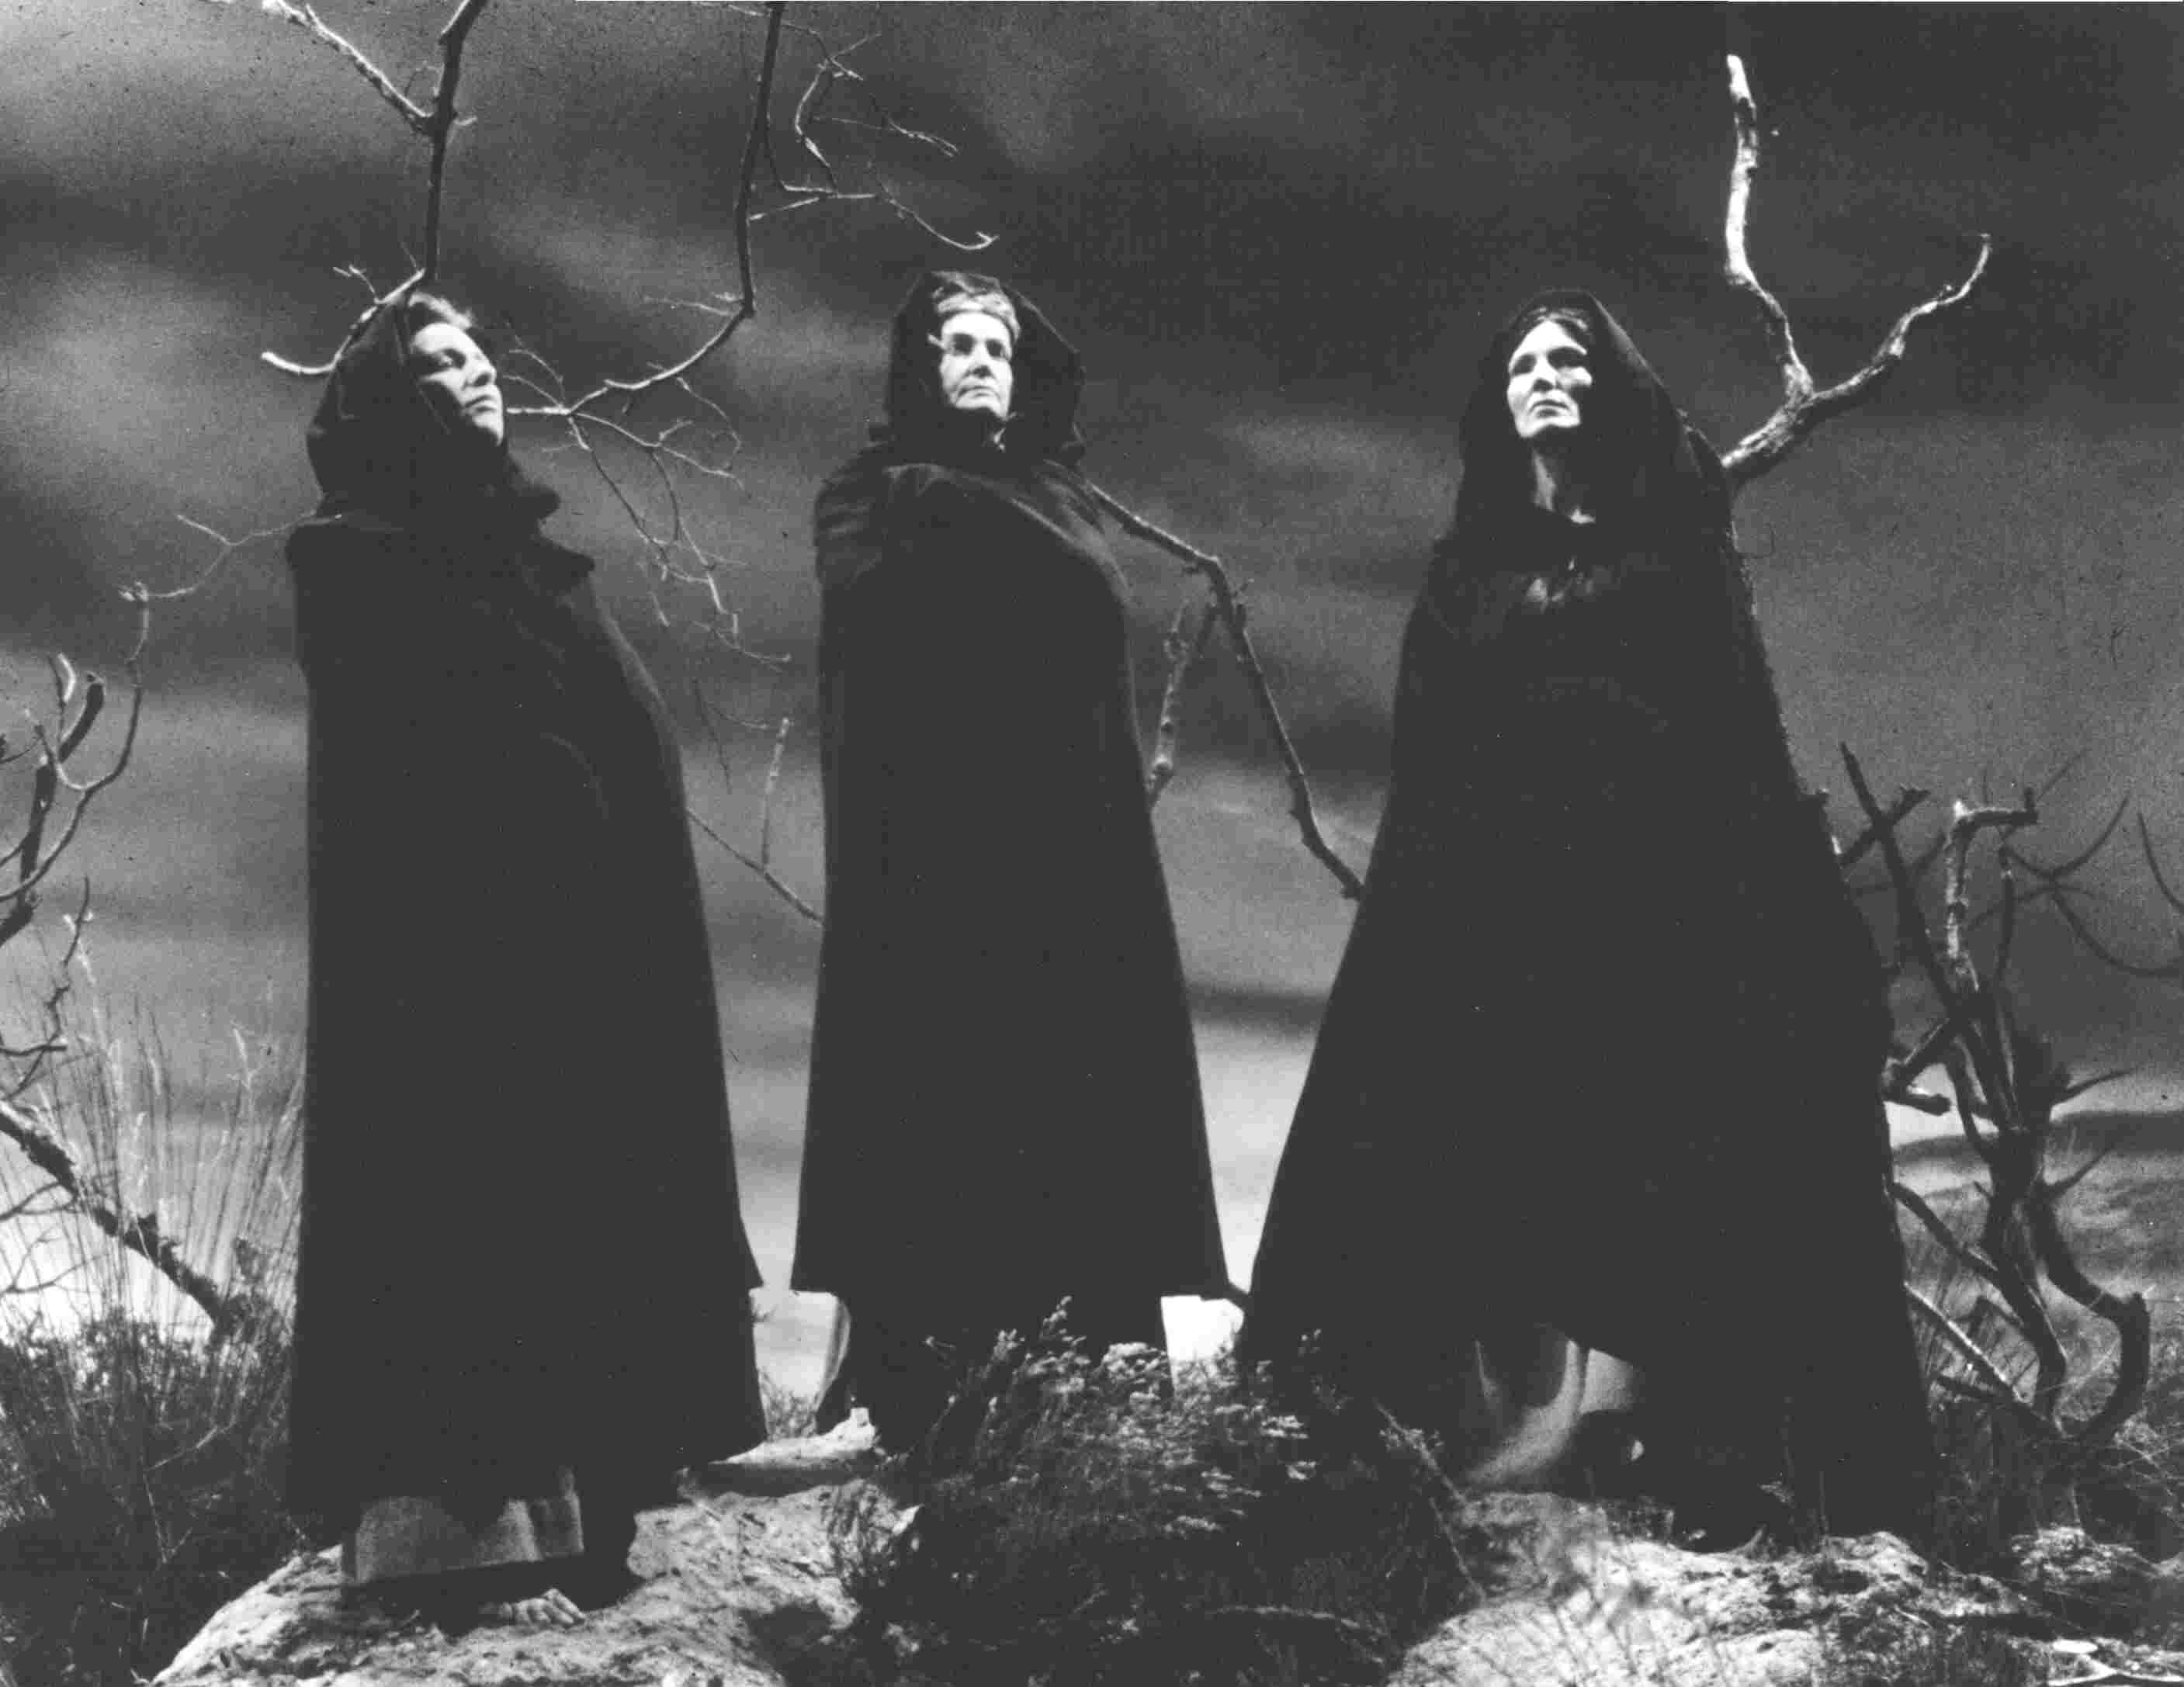 Three Weird Sisters Macbeth 6